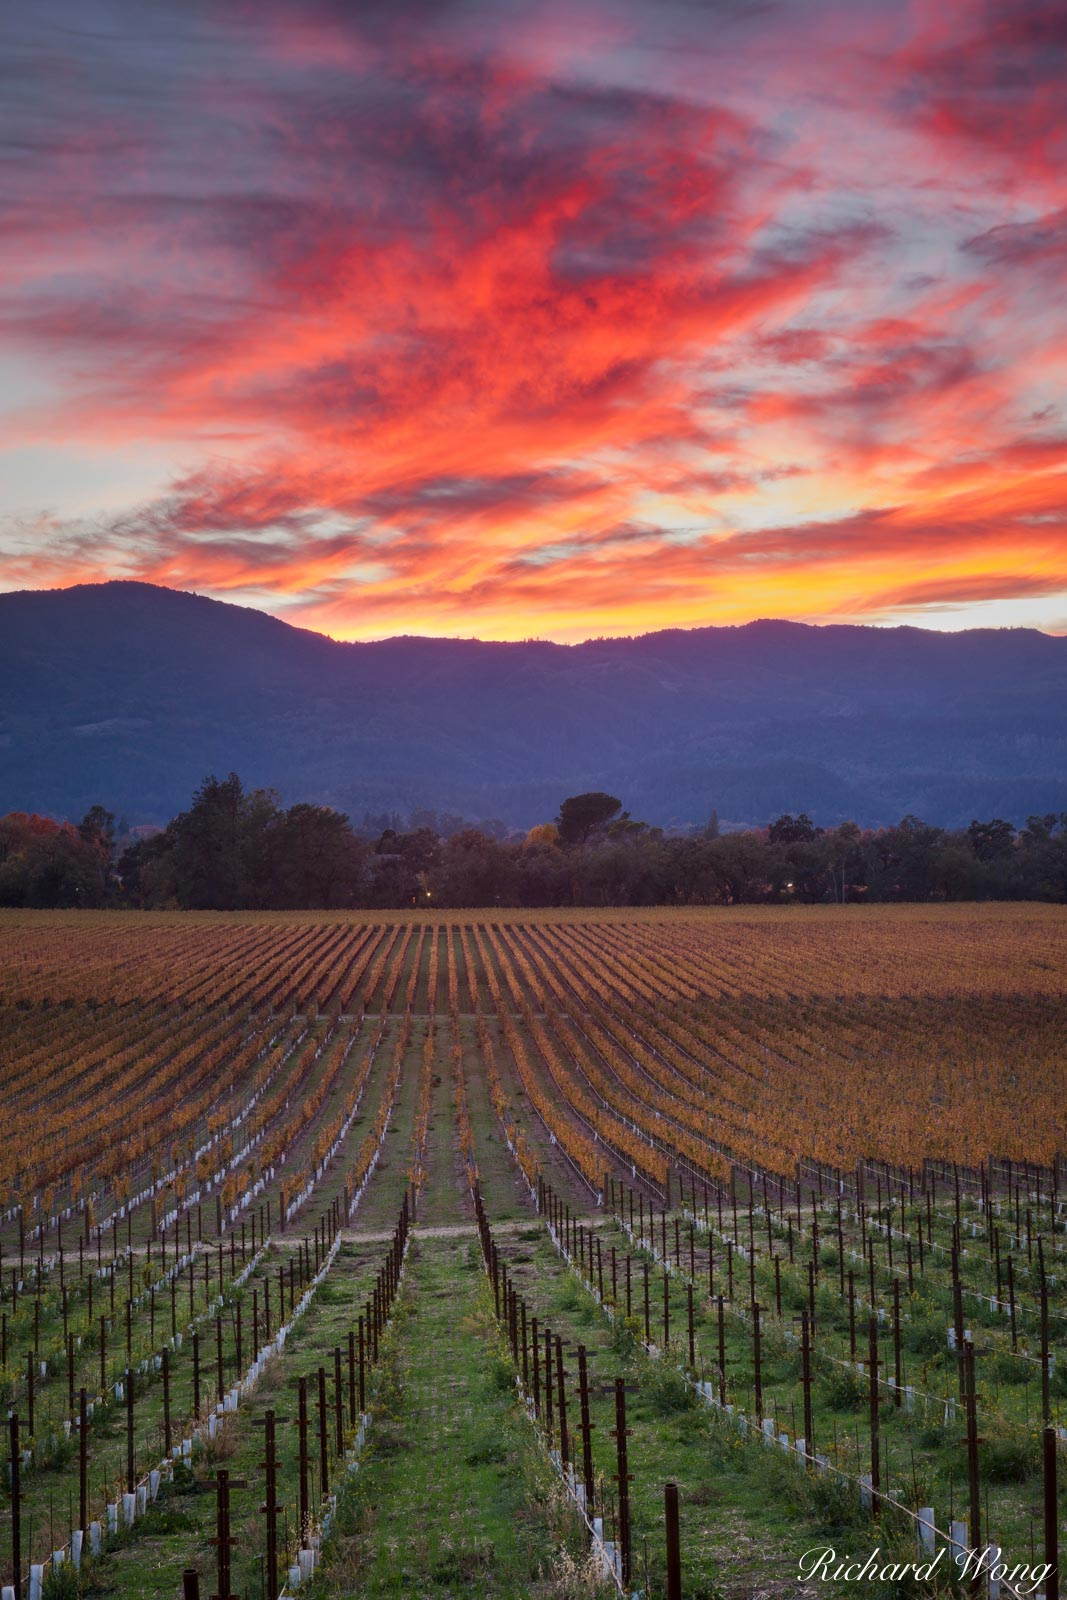 alpenglow, autumn leaves, colorful, fall colors, grapevines, green, landscape, mumm, napa, napa county, napa valley, north america, northern california, orange, outdoors, outside, red, rows, san franc, photo